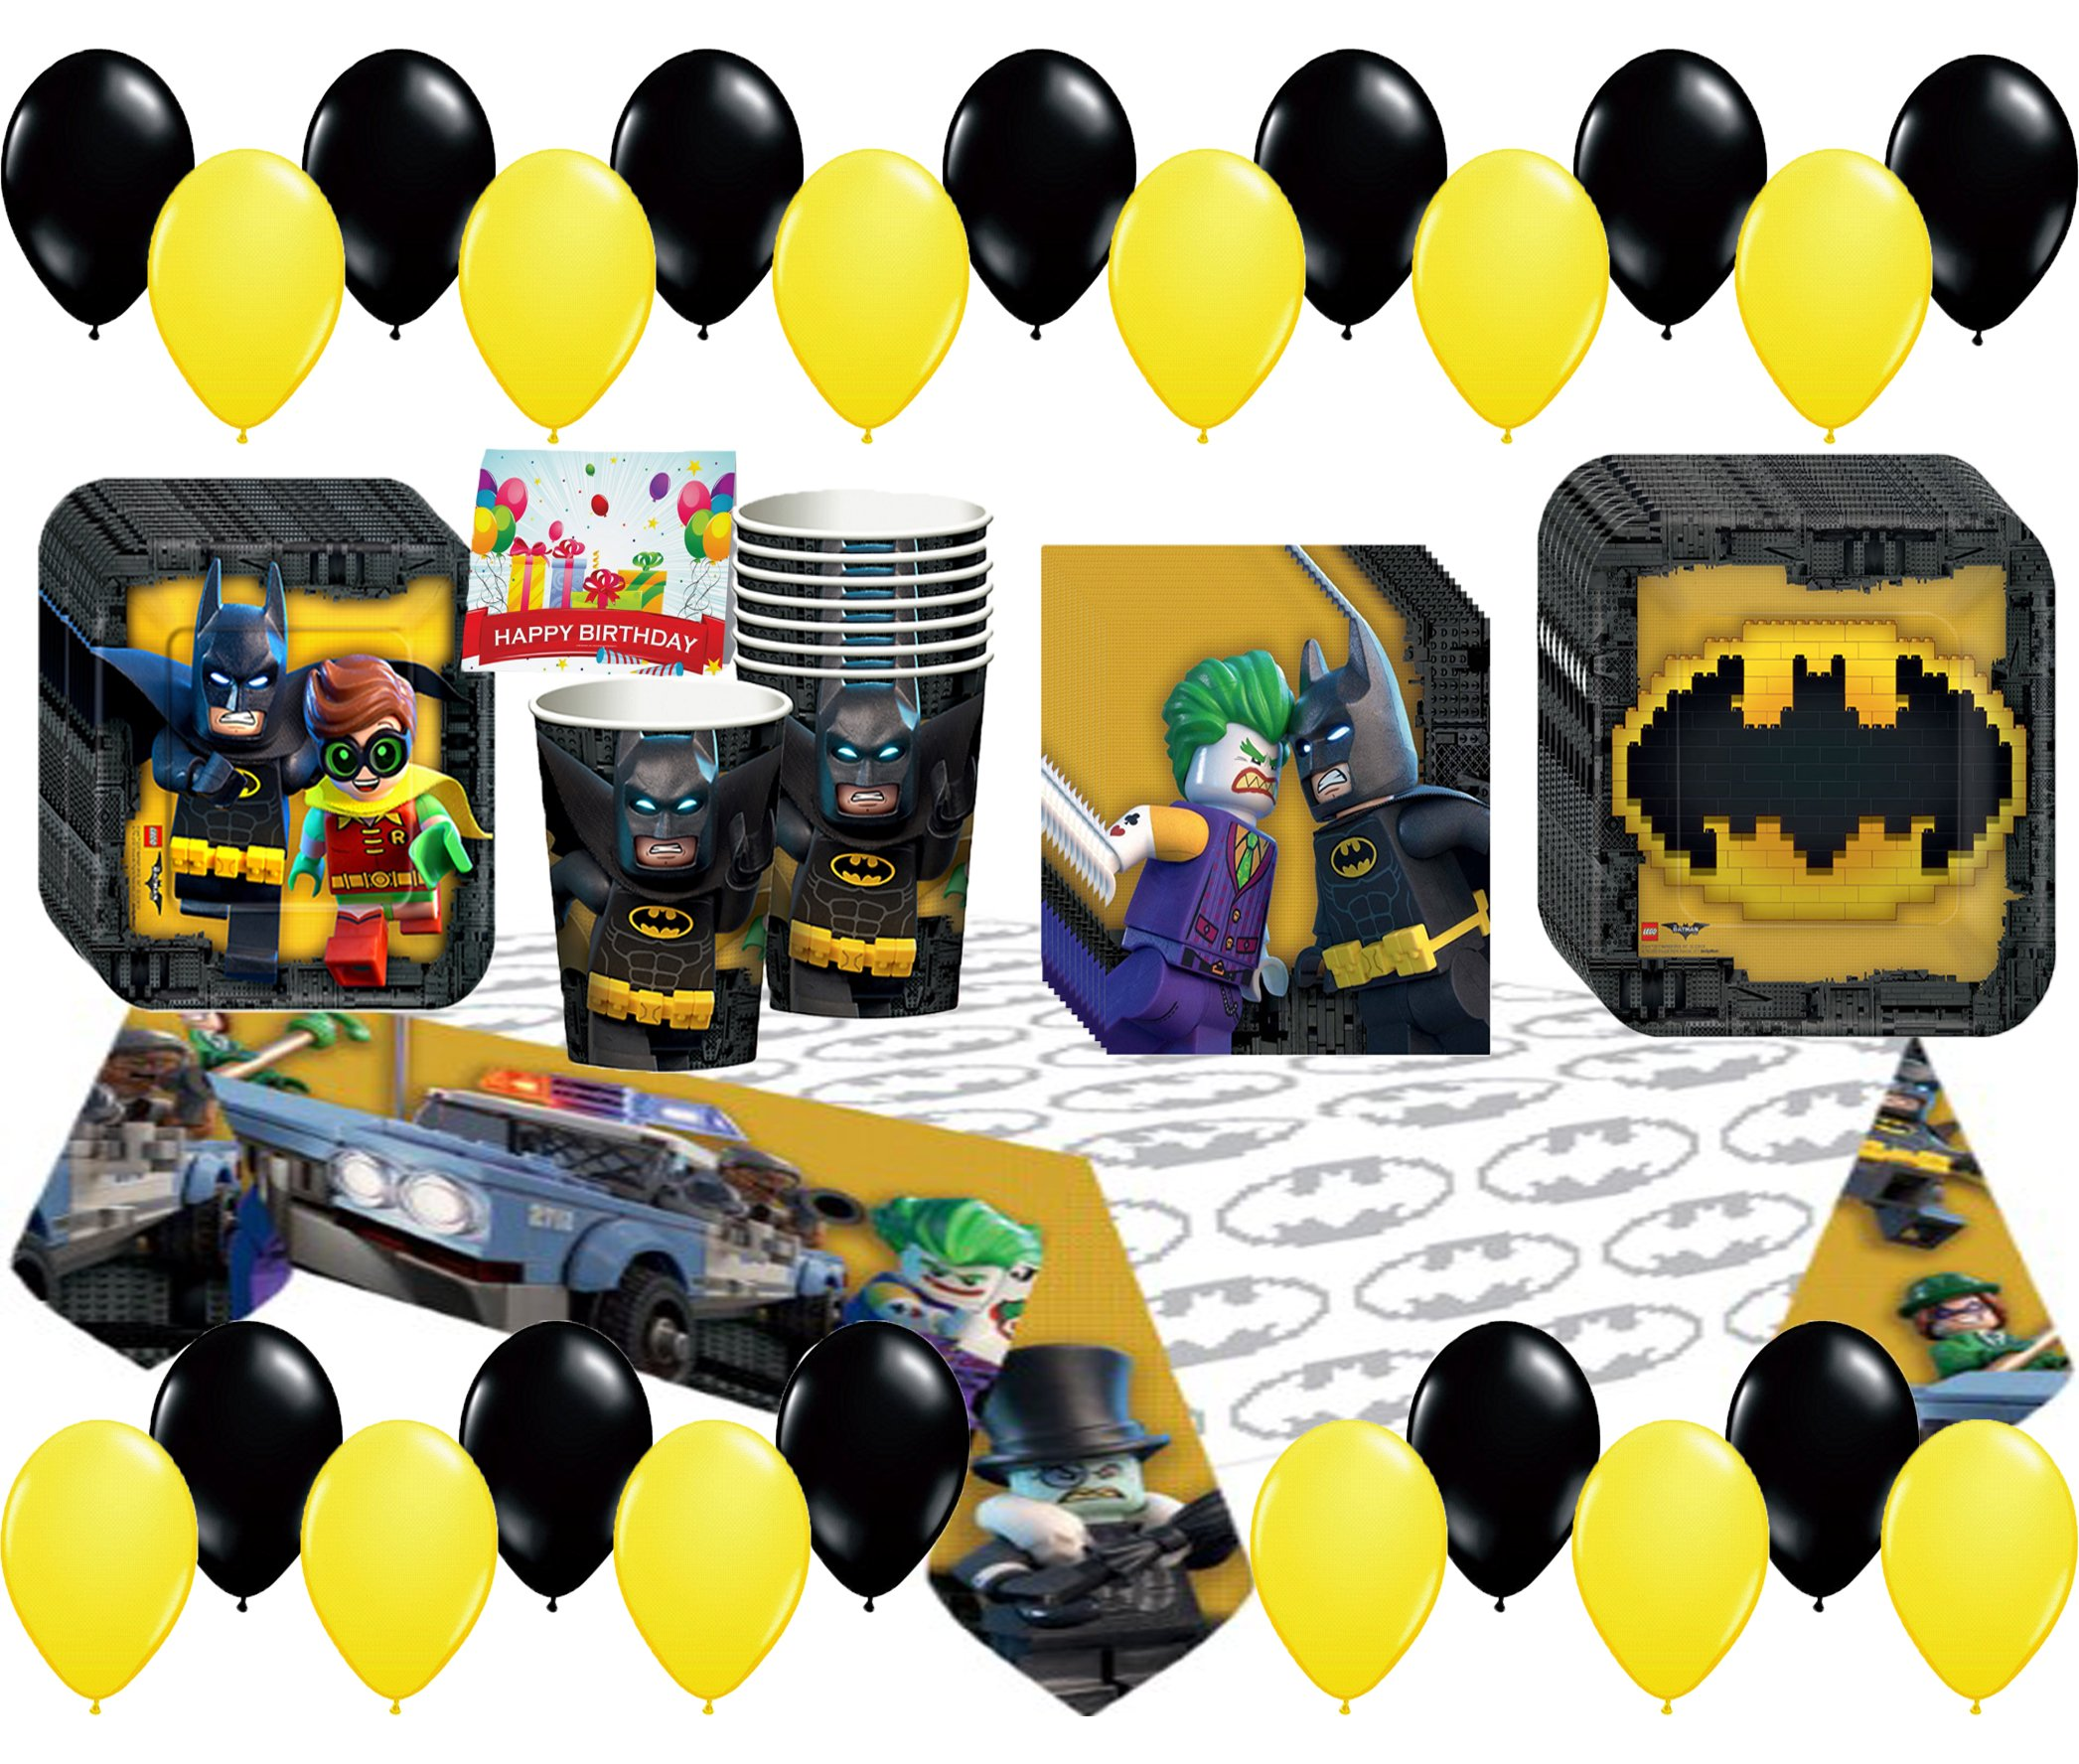 LEGO Batman Movie Deluxe Party Pack Bundle